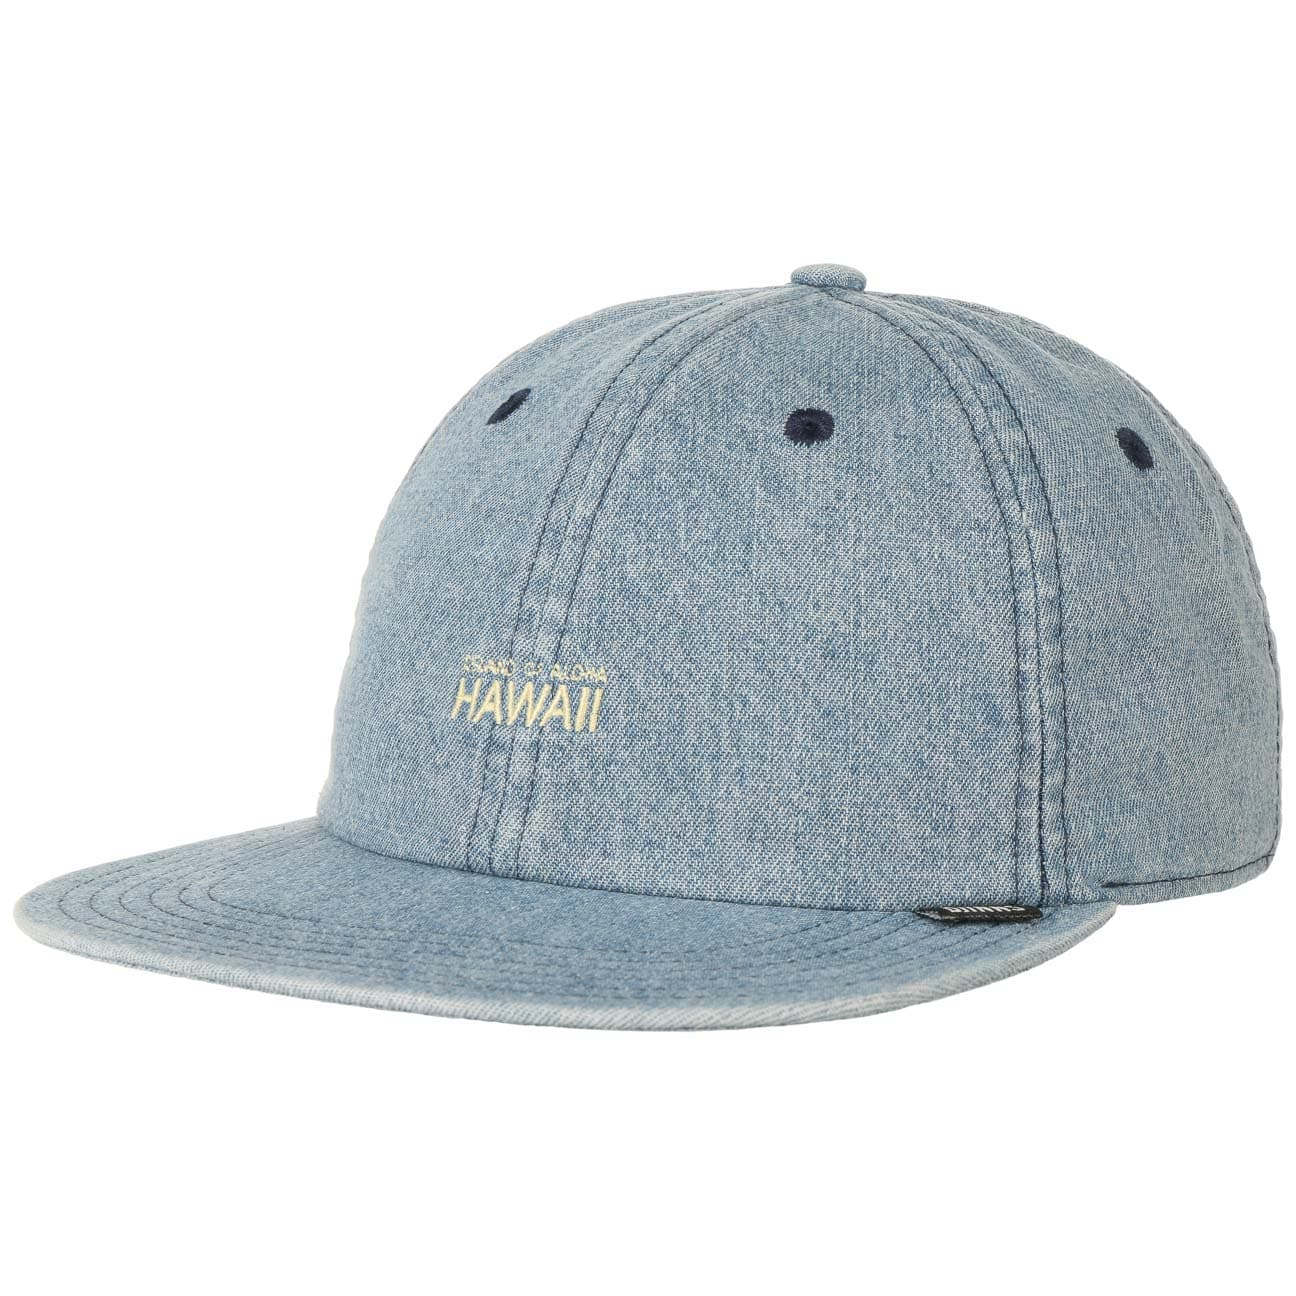 Gorra 6P SB Deconstructed Hawaii by Djinns  gorra de baseball